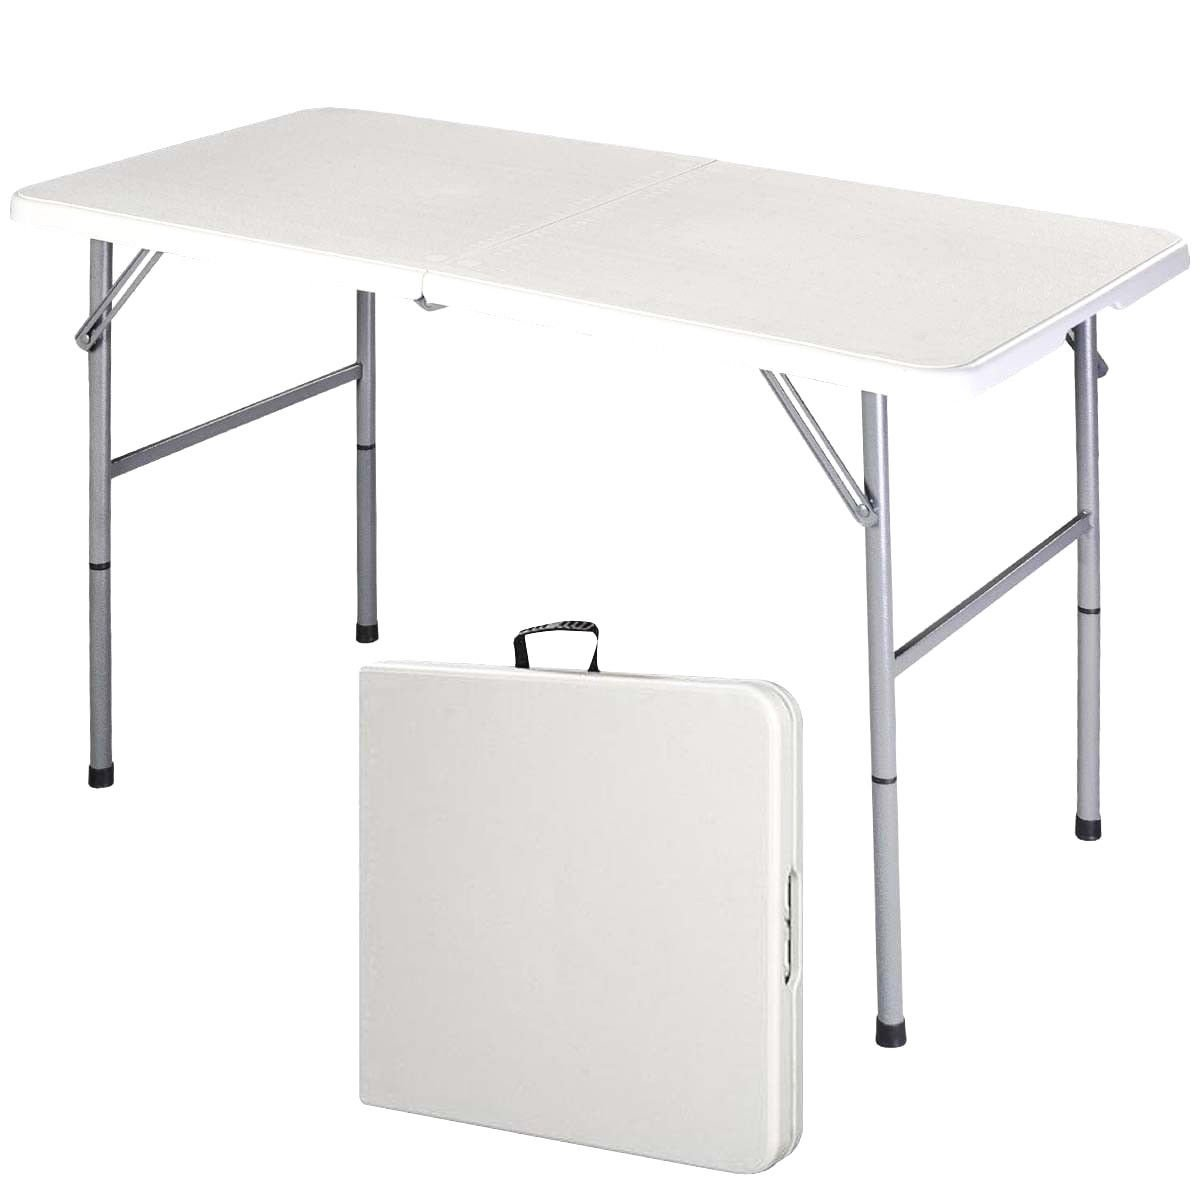 Supremus 4 Ft. Folding Table, Portable, High Utility, Perfect for Indoors, Outdoors, Picnics, Buffet Party, Dining, Camping, Patio Table, 4 Feet